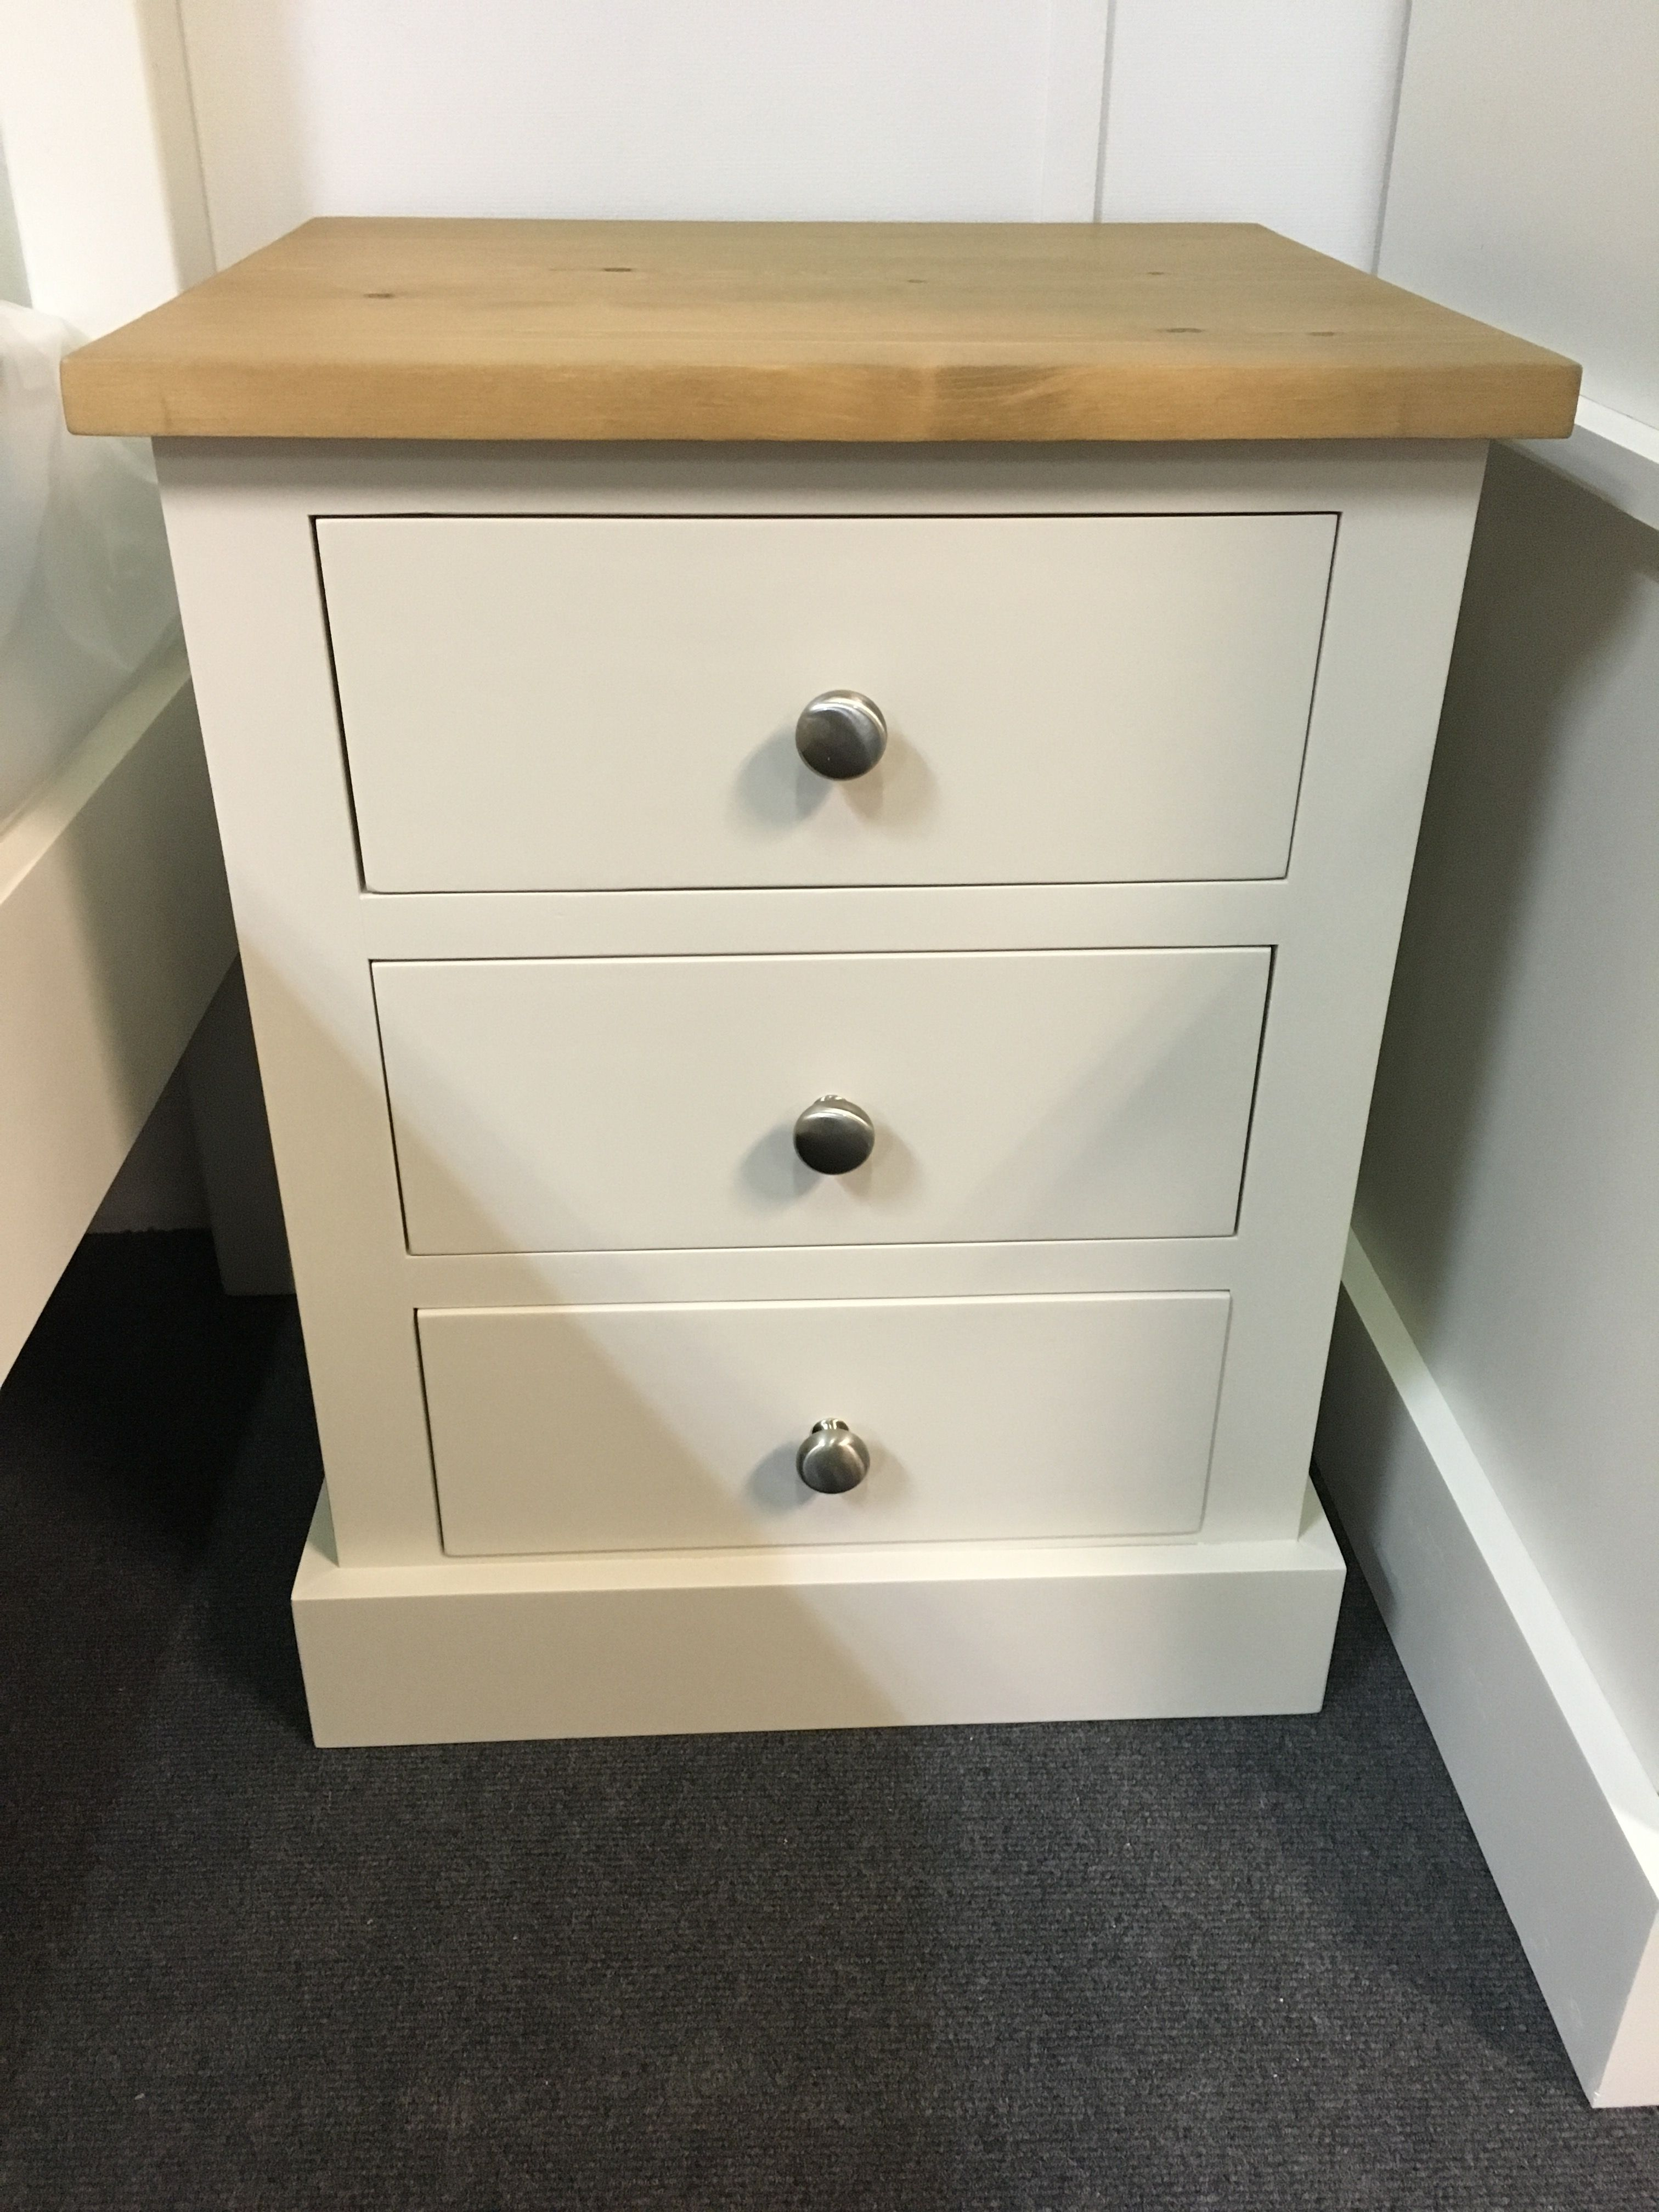 3 Drawer Bedside Table Painted In F B Skimming Stone With A Pine Top Cobwebs Furniture Company Affordable Furniture Stores Top Furniture Furniture Companies